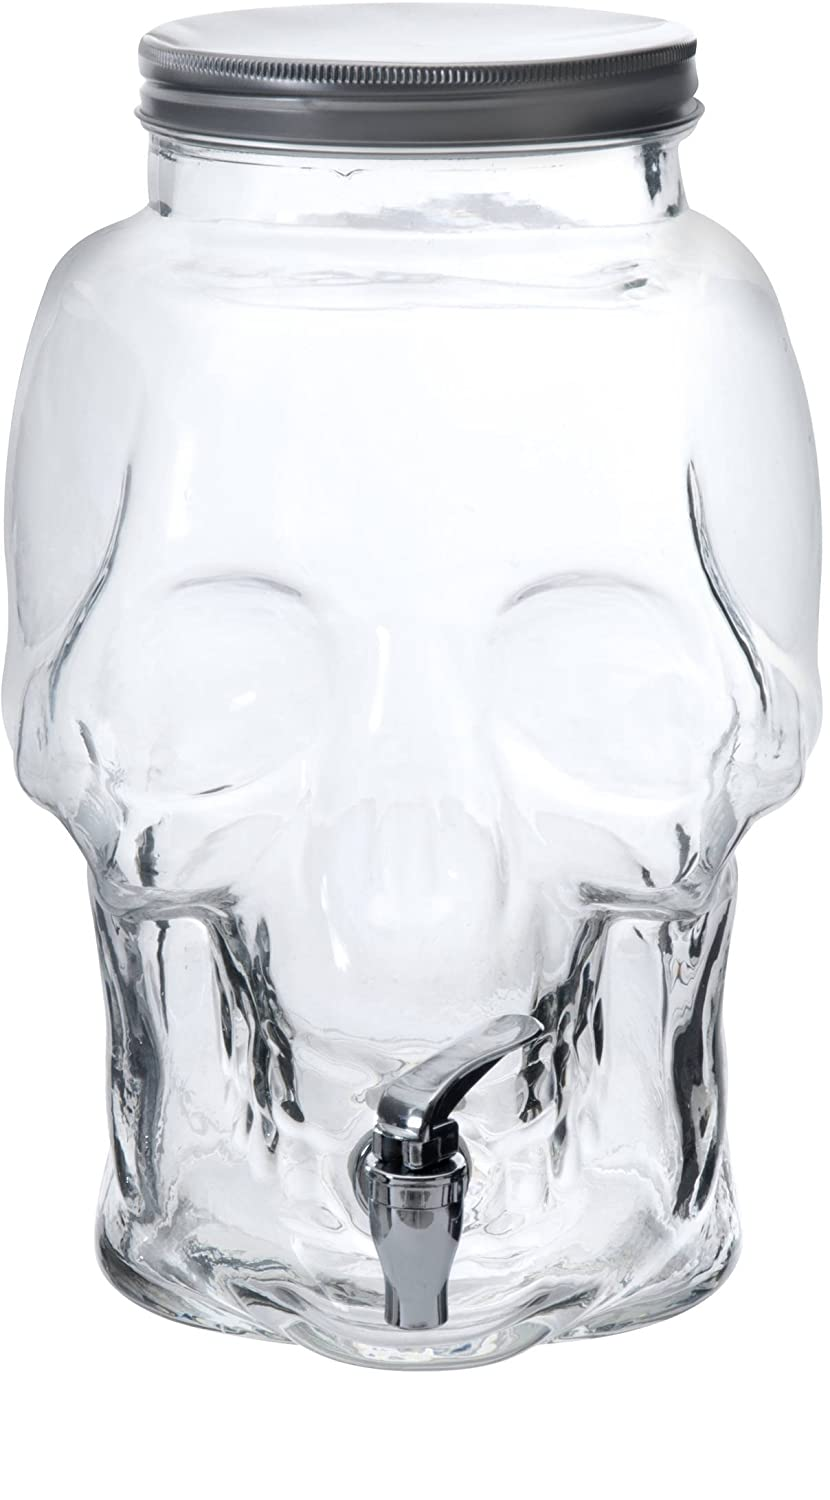 Circleware Skull Mason Jar Glass Drink Beverage Dispenser with Metal Lid, Huge 2.1 Gallon-8 Liters, Glassware for Water, Juice, Beer, Wine, Liquor, Kombucha Iced Tea Punch & Cold Drinks 07698